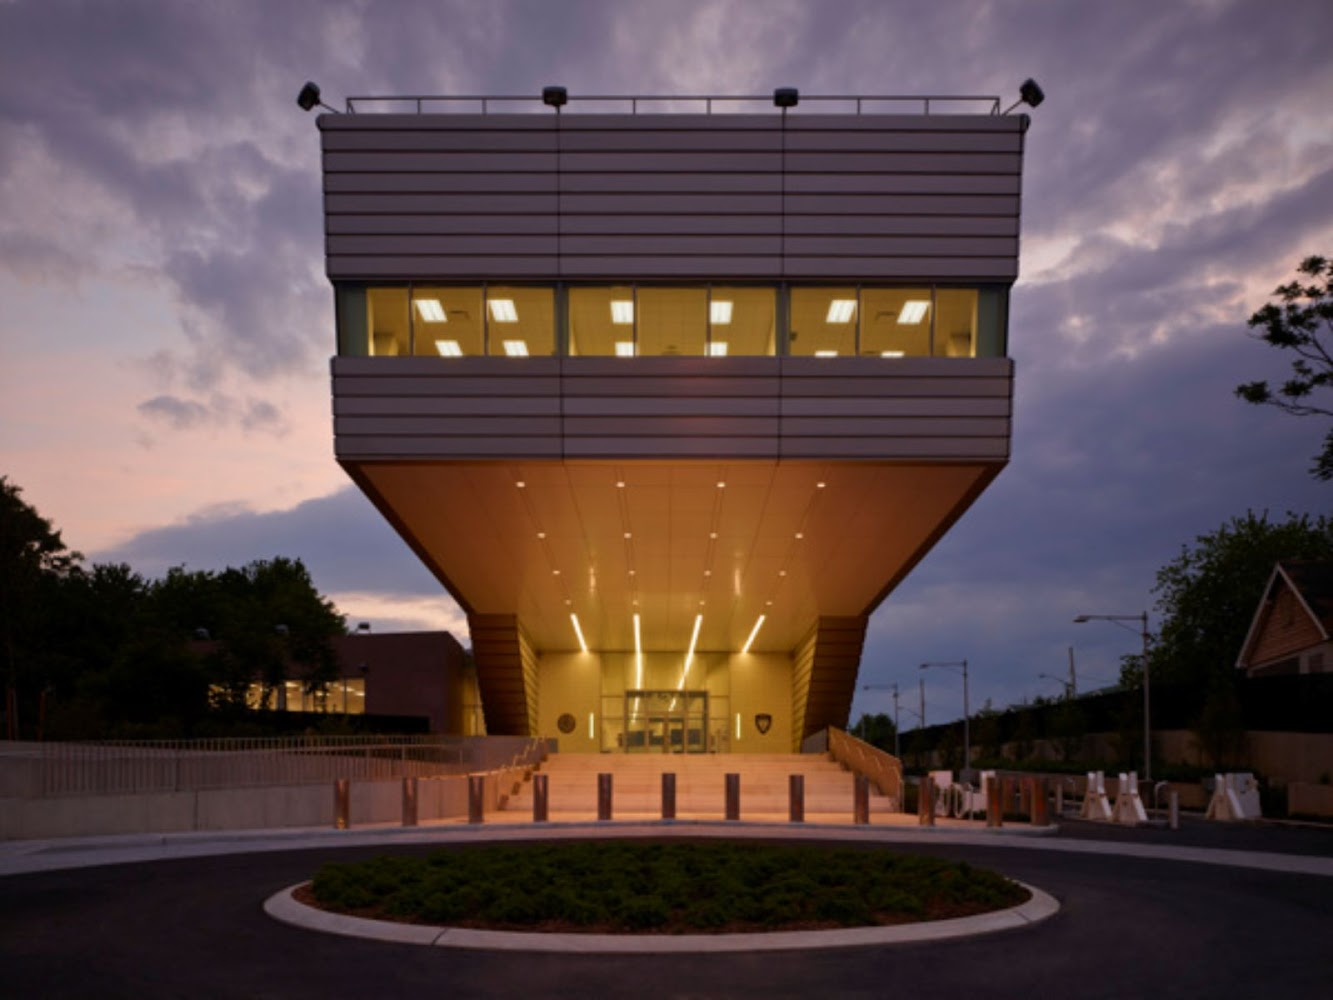 11121st-Police-Precinct-Station-House-by-Rafael-Vinoly-Architects